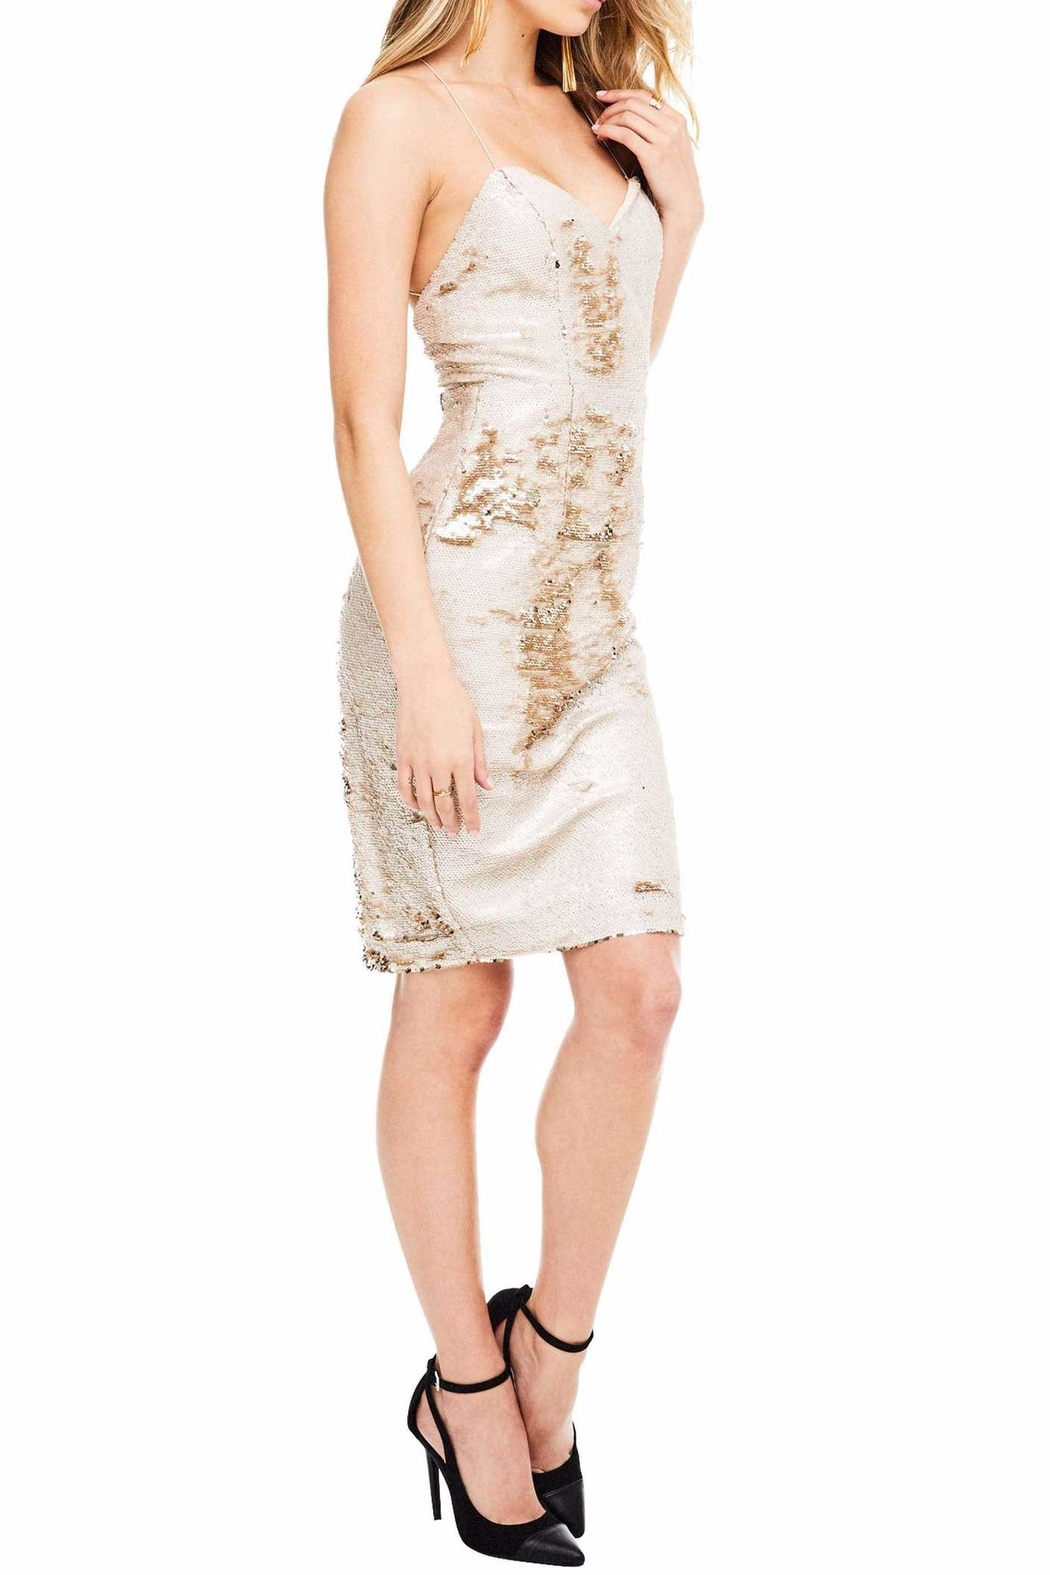 ASTR Francesca Sequin Dress - Side Cropped Image